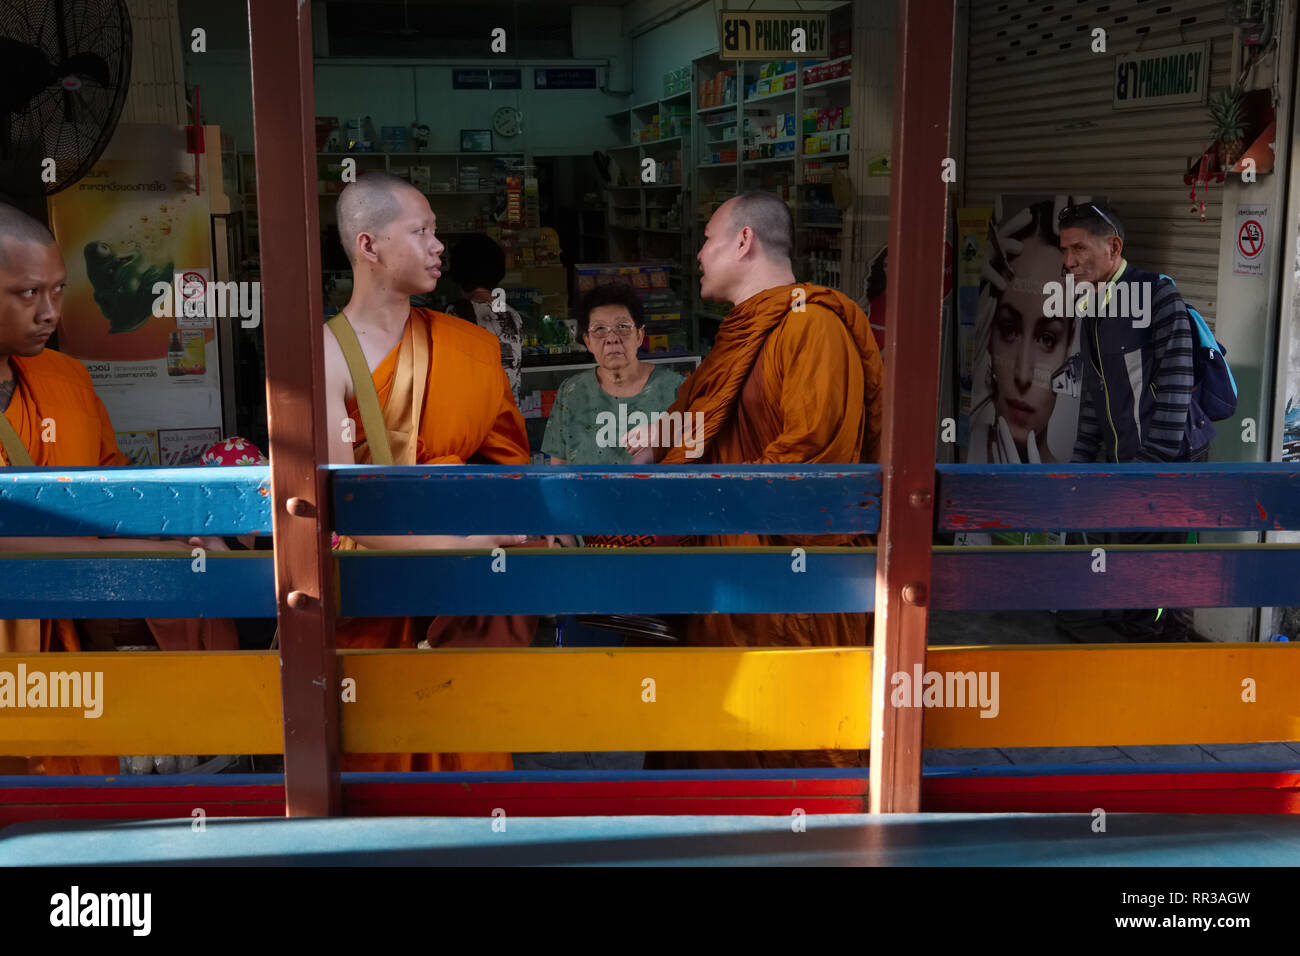 Buddhist monks waiting at a bus stop in Phuket Town, Phuket, Thailand, seen from inside a songthaew, a traditional, basic kind of local bus - Stock Image